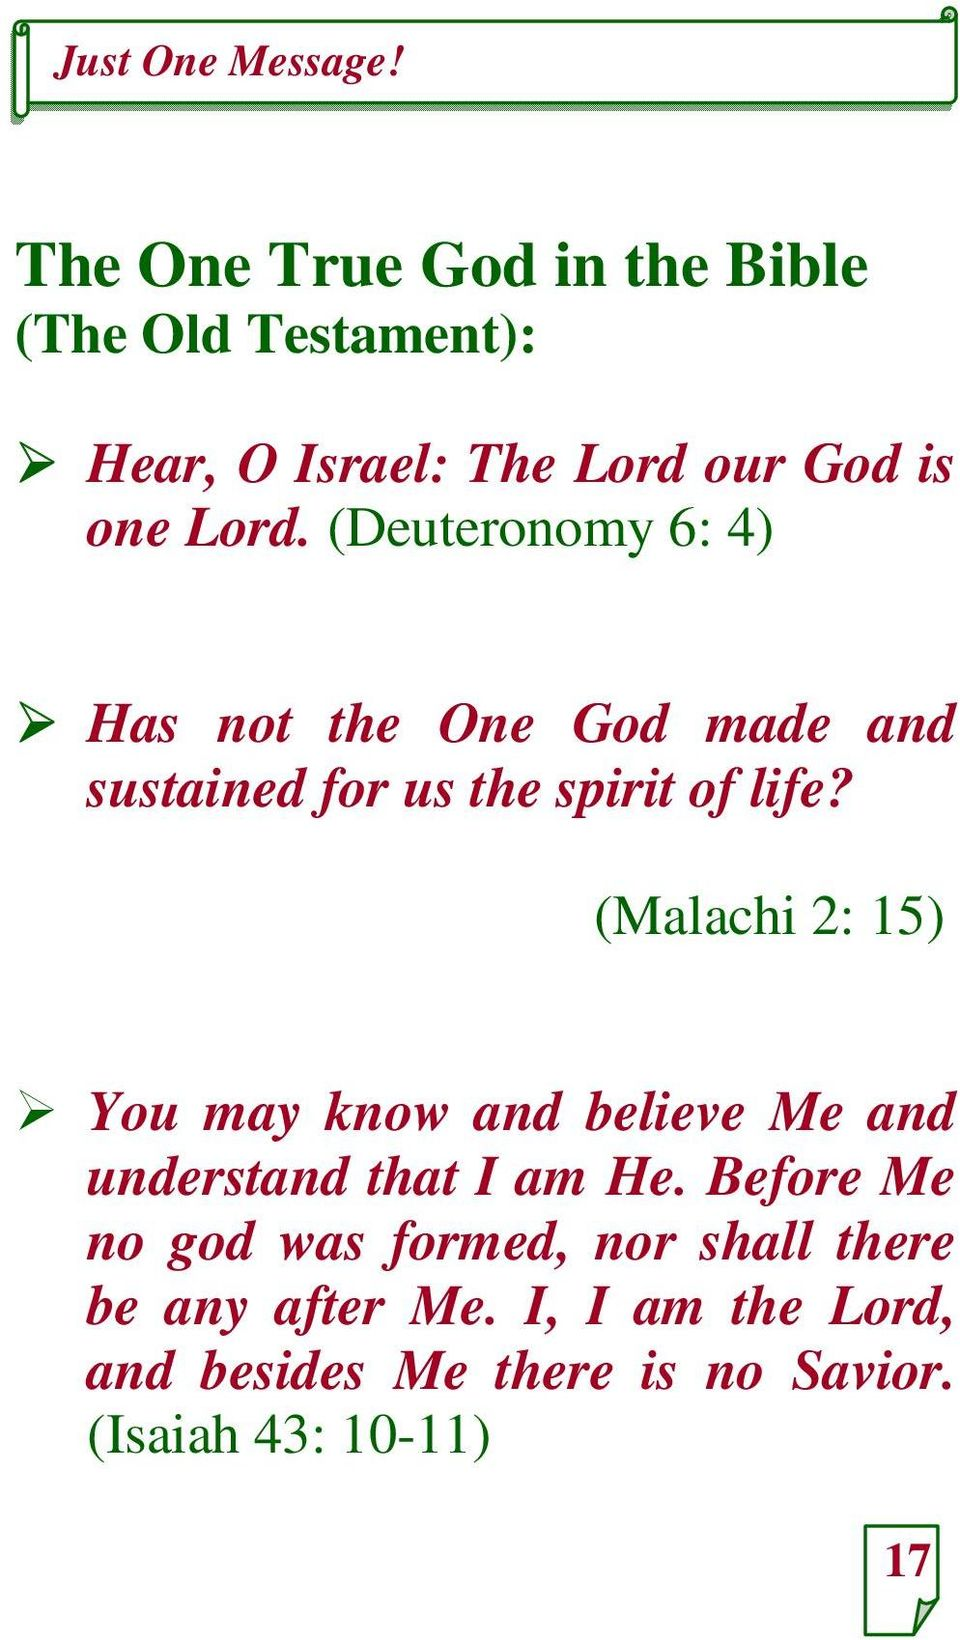 (Malachi 2: 15) You may know and believe Me and understand that I am He.